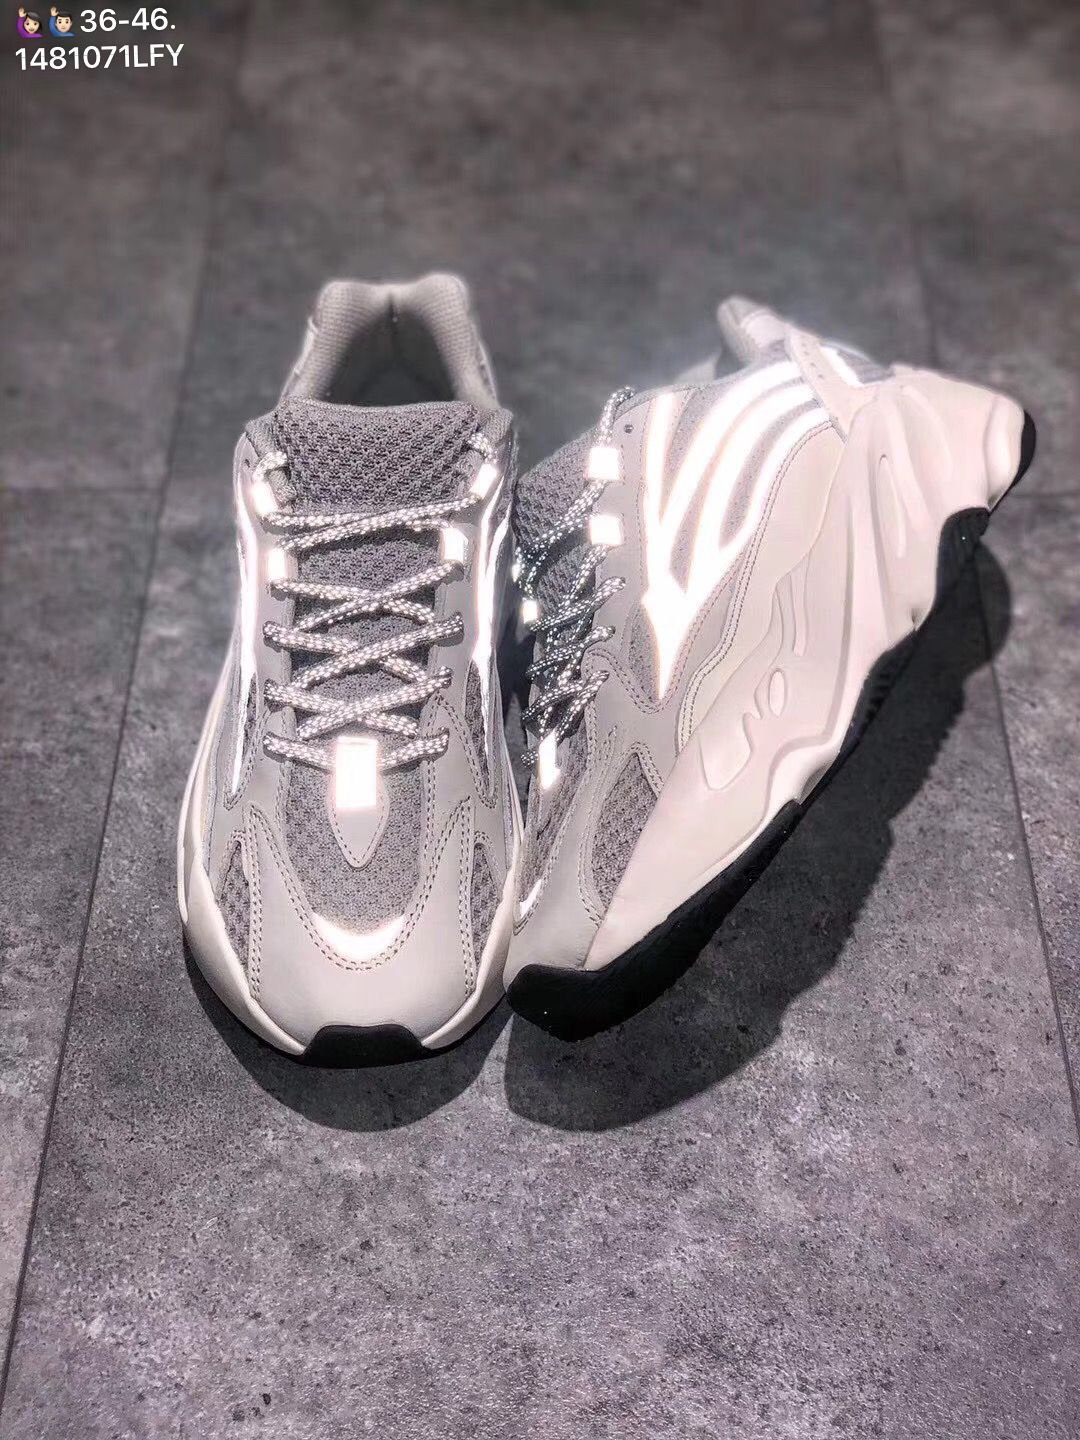 dfbdbe78a5ba1 Adidas yeezy boost 700 V2 static reflective sneakers woman man couple shoes